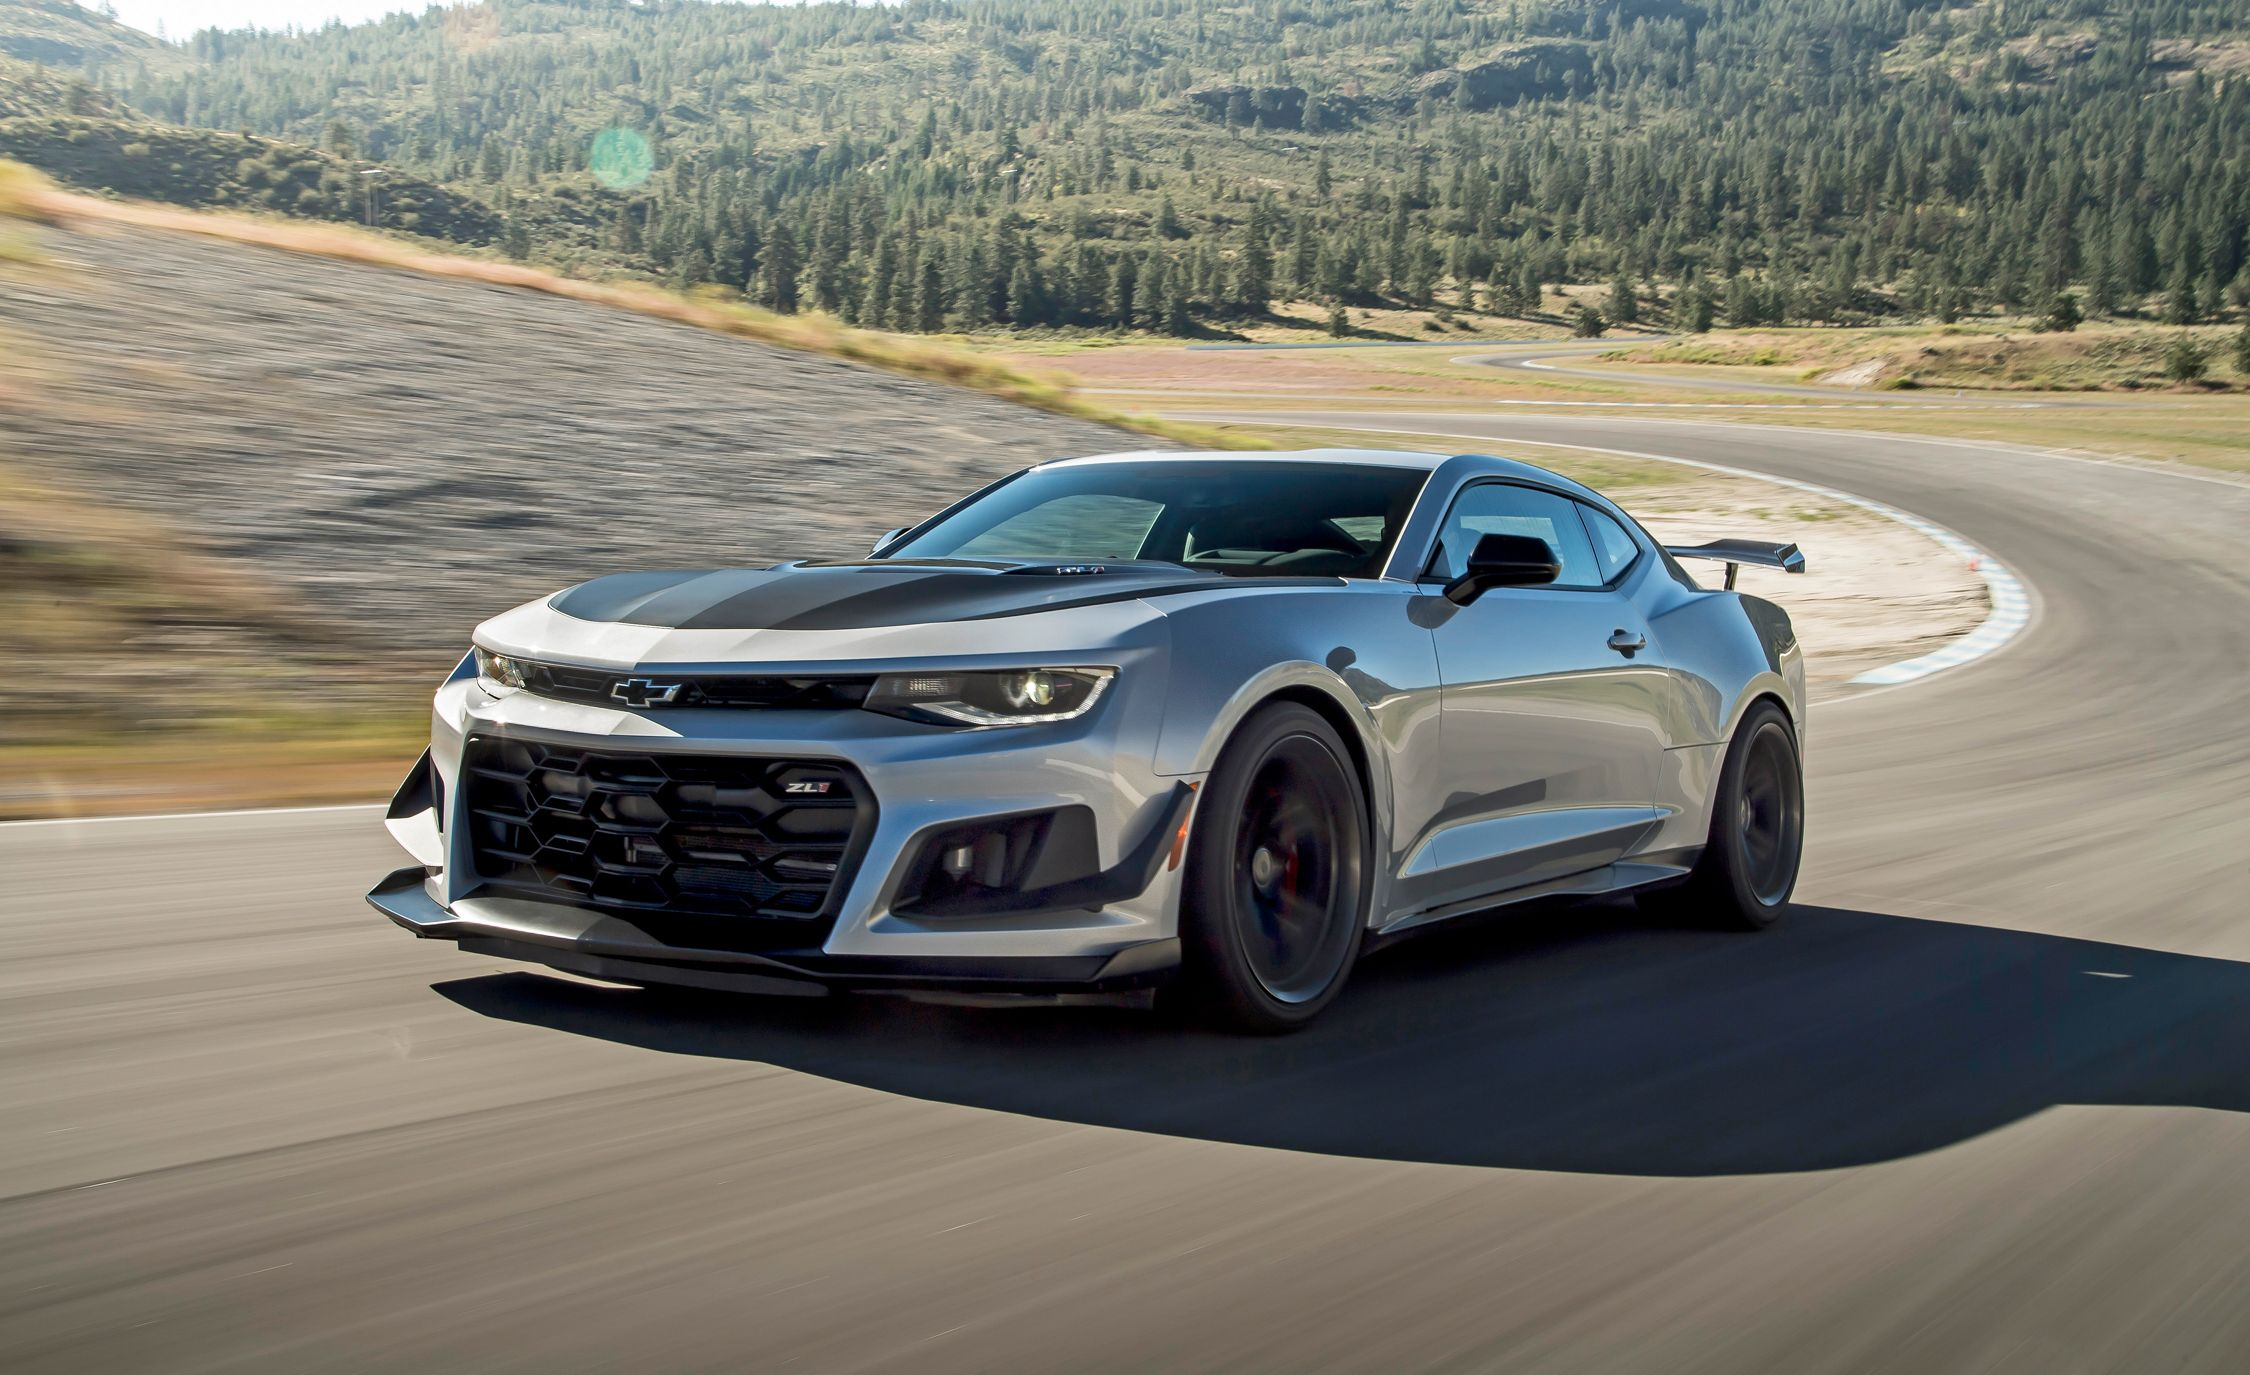 2018 Camaro Zl1 Le Best New Cars For 2018